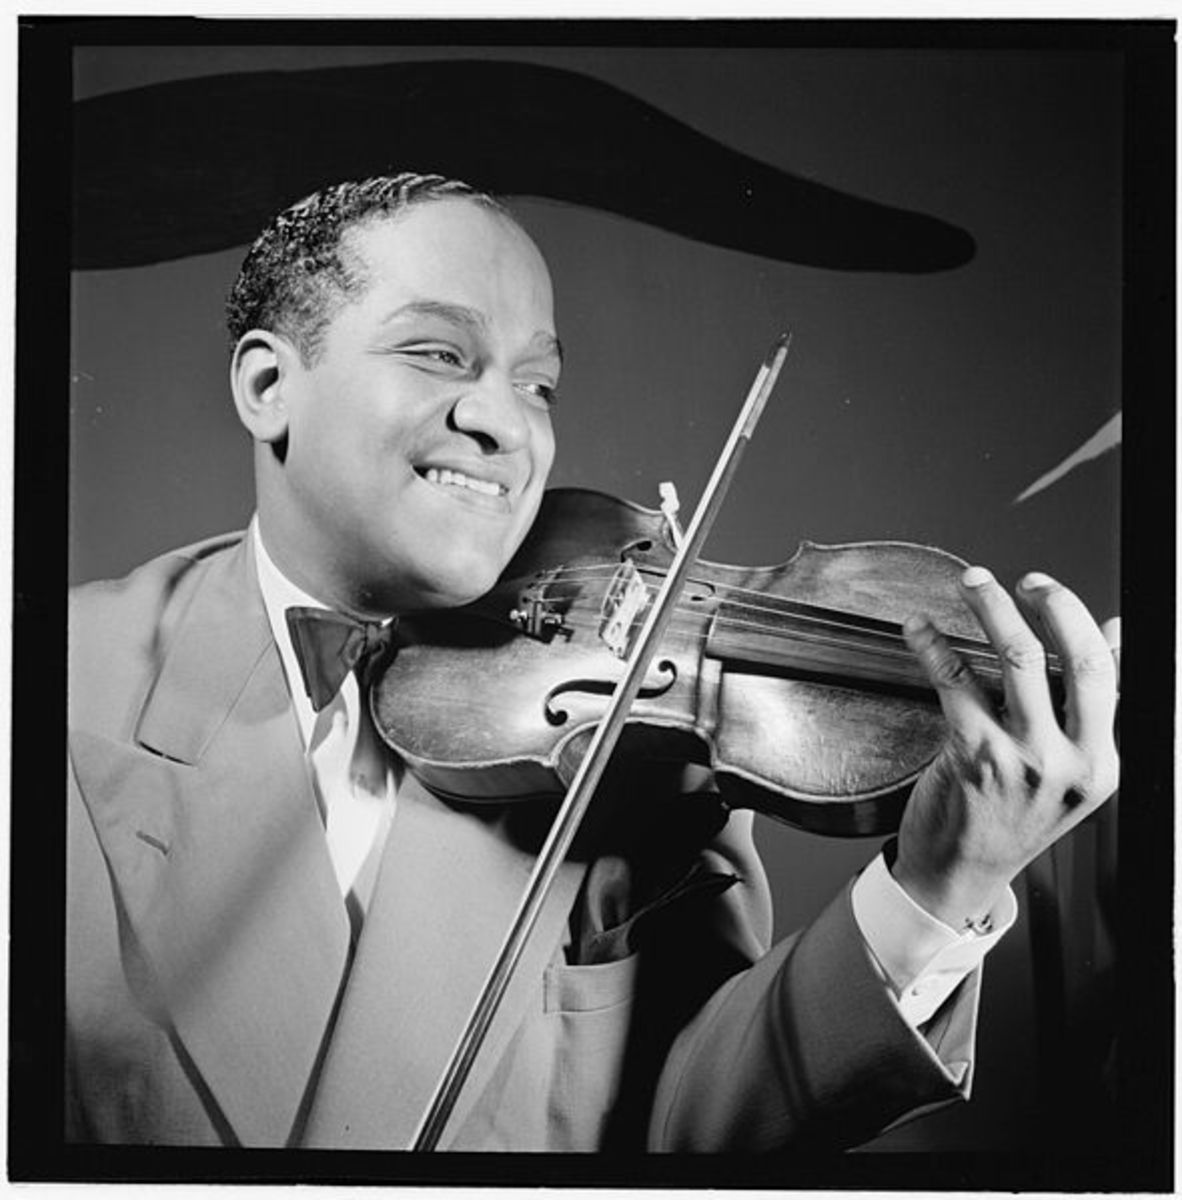 Eddie South playing some violin jazz.  Eddie, like all jazz greats, knew how to keep the 'through-line' going.  Photo by William Gottlieb, courtesy Library of Congress and Wikimedia Commons.